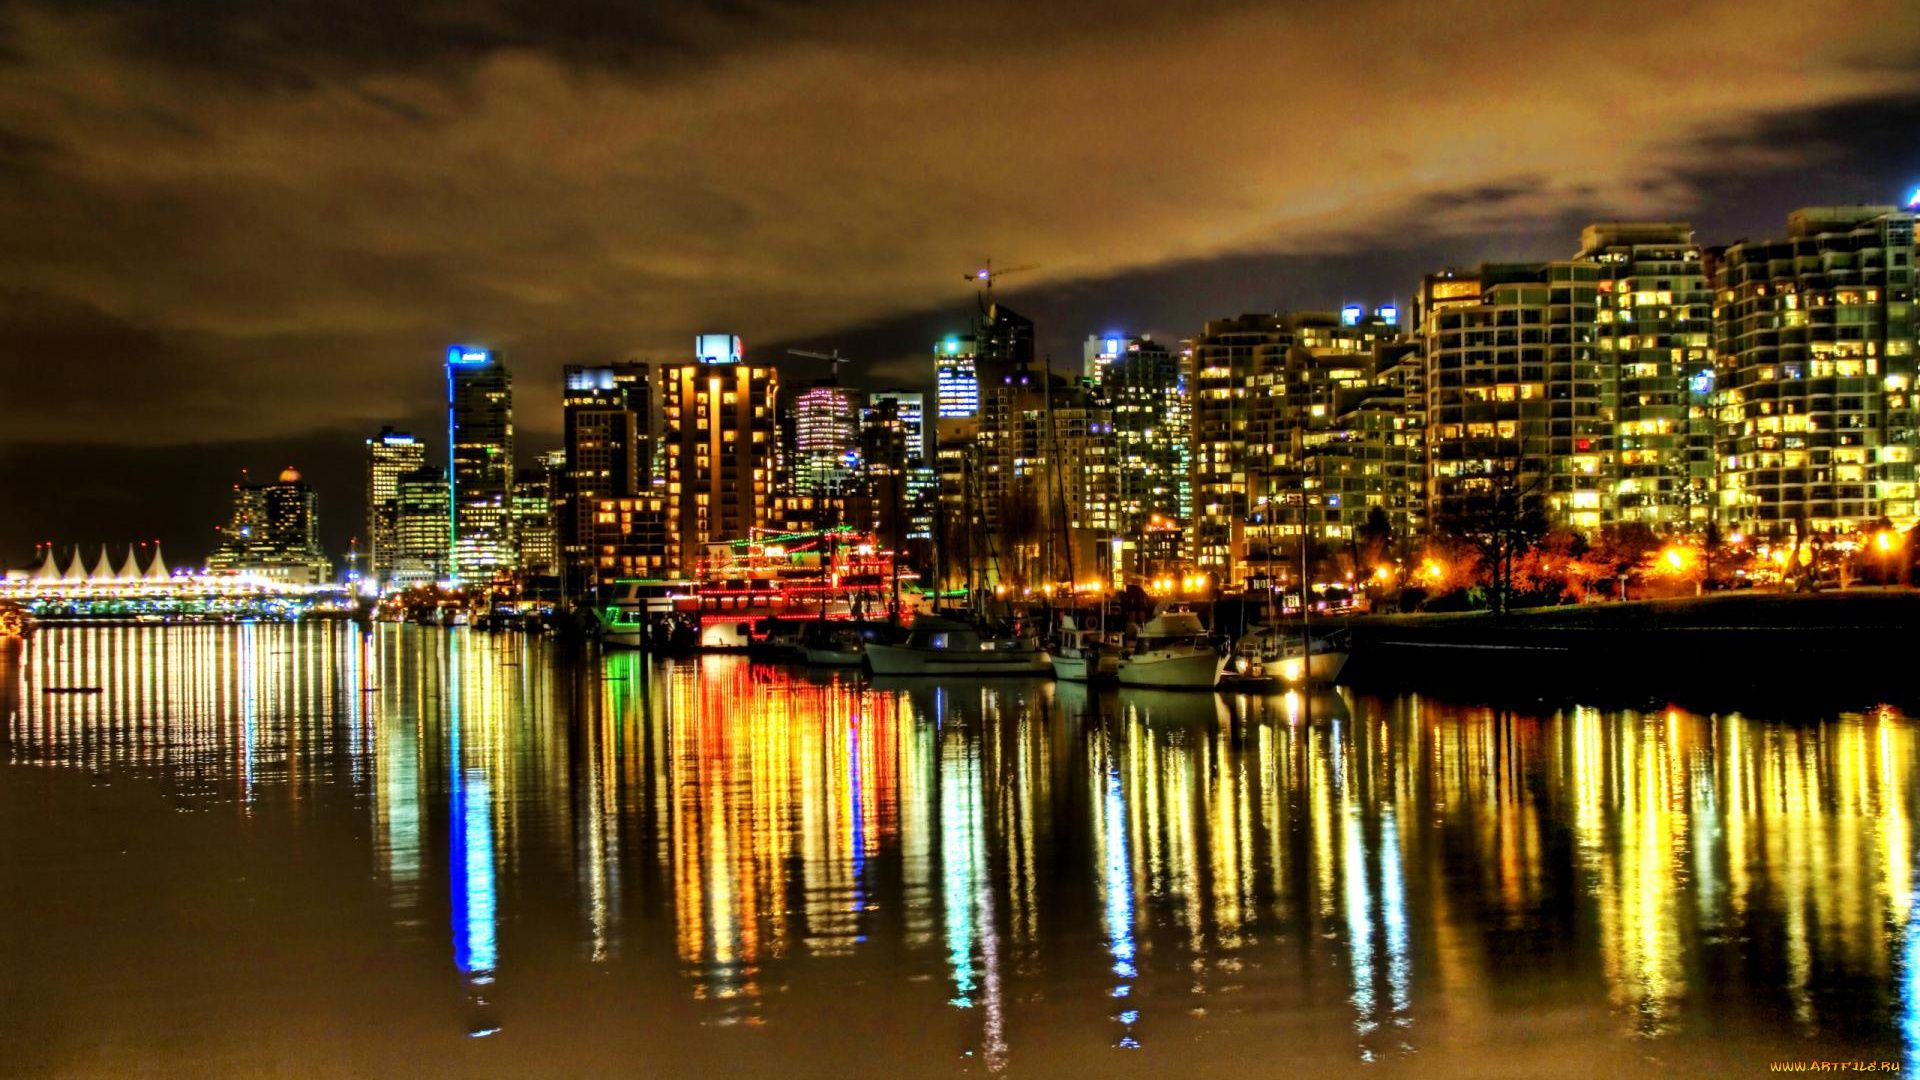 Vancouver 1080p background